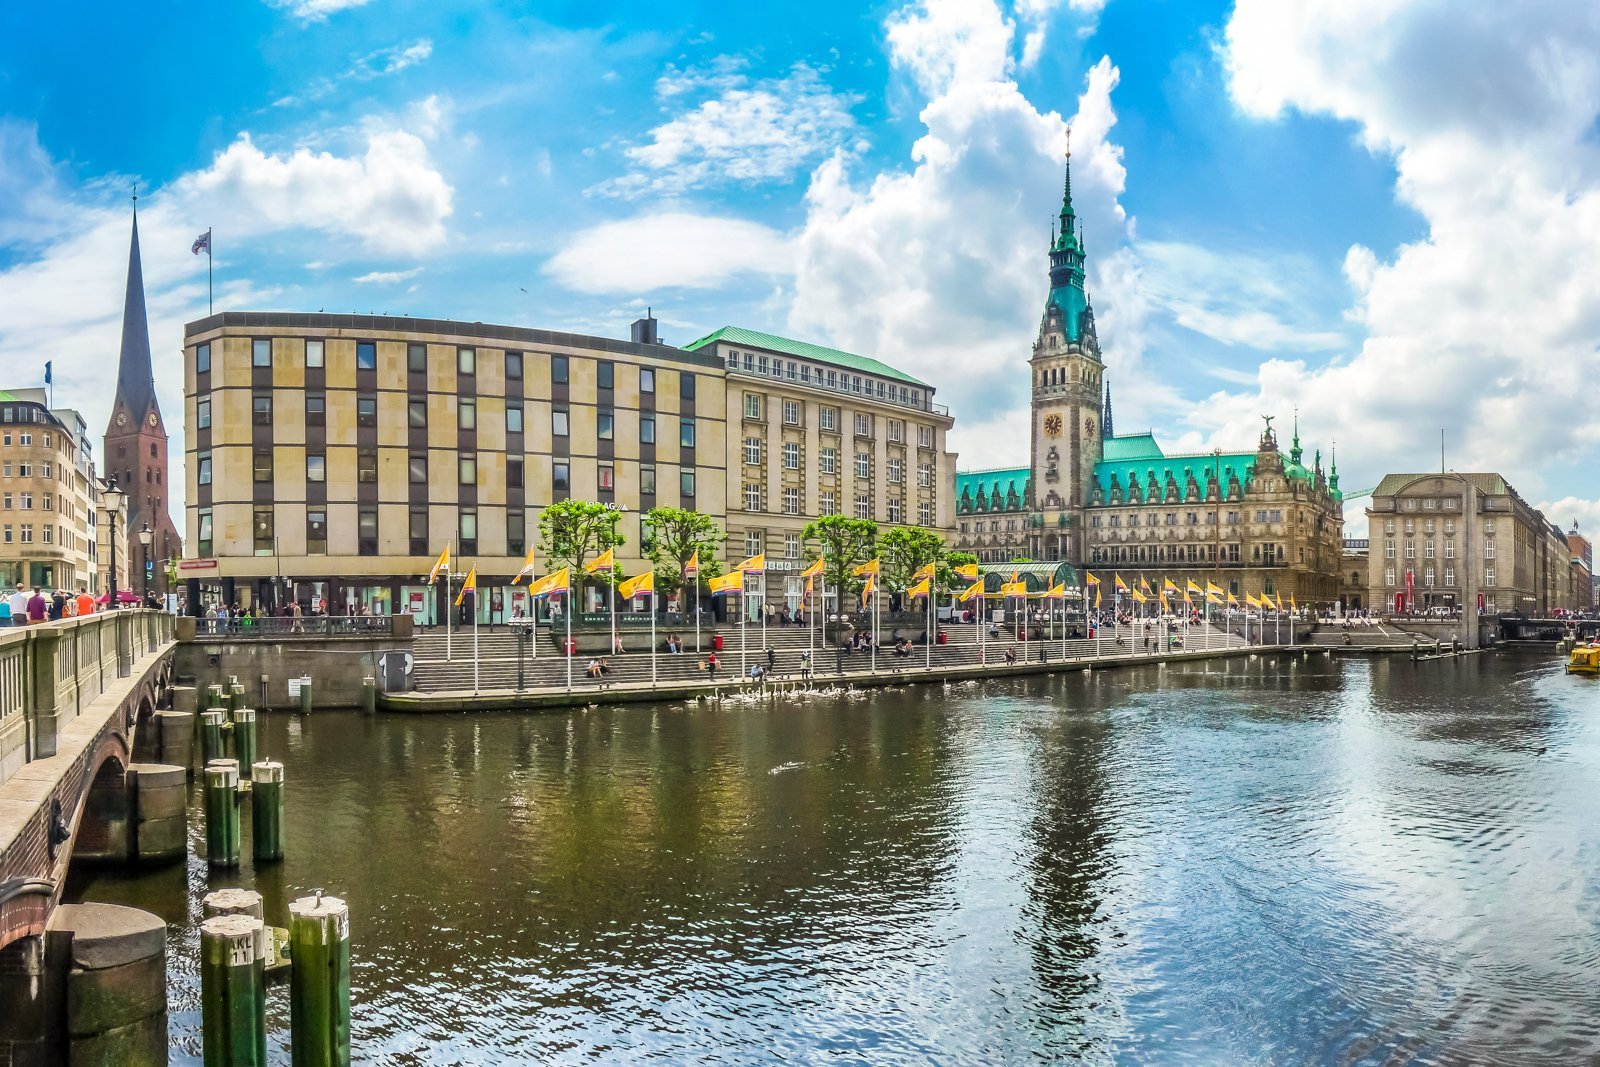 Things to do in Hamburg Walking tour with Beautiful view of Hamburg city center with town hall and Alster river, Germany